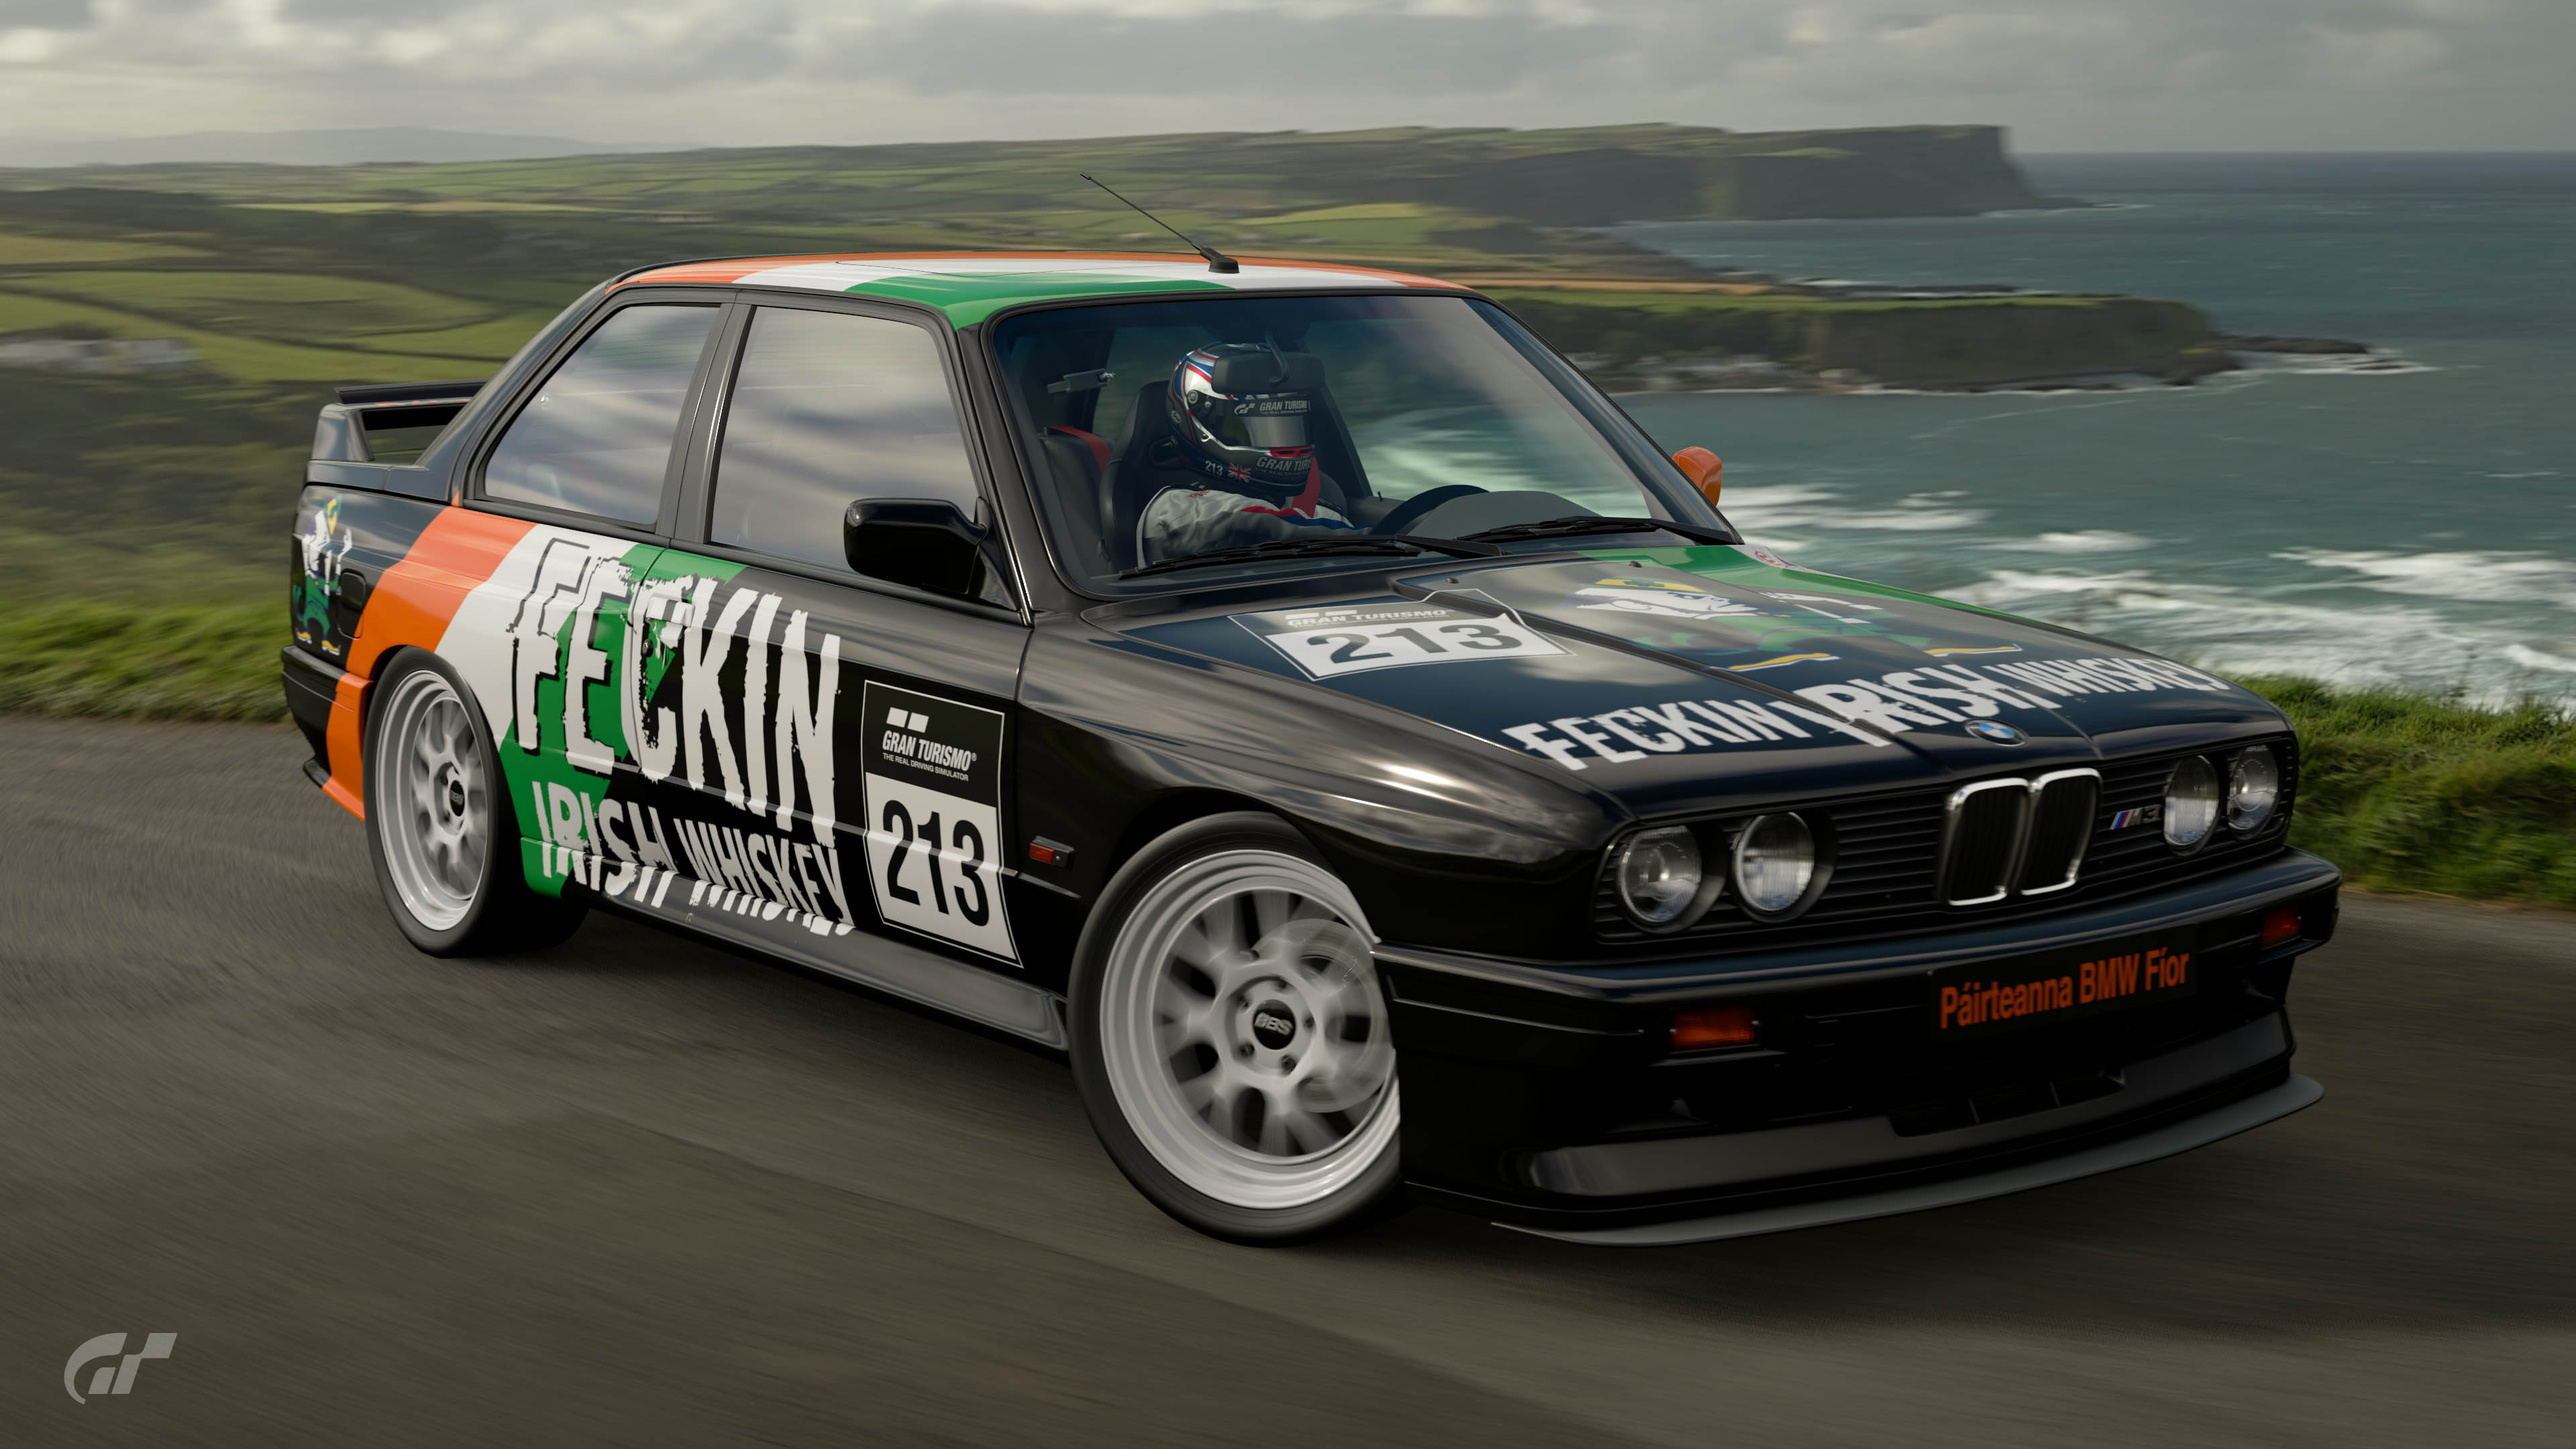 Feckin Irish Whiskey BMW M3 Livery